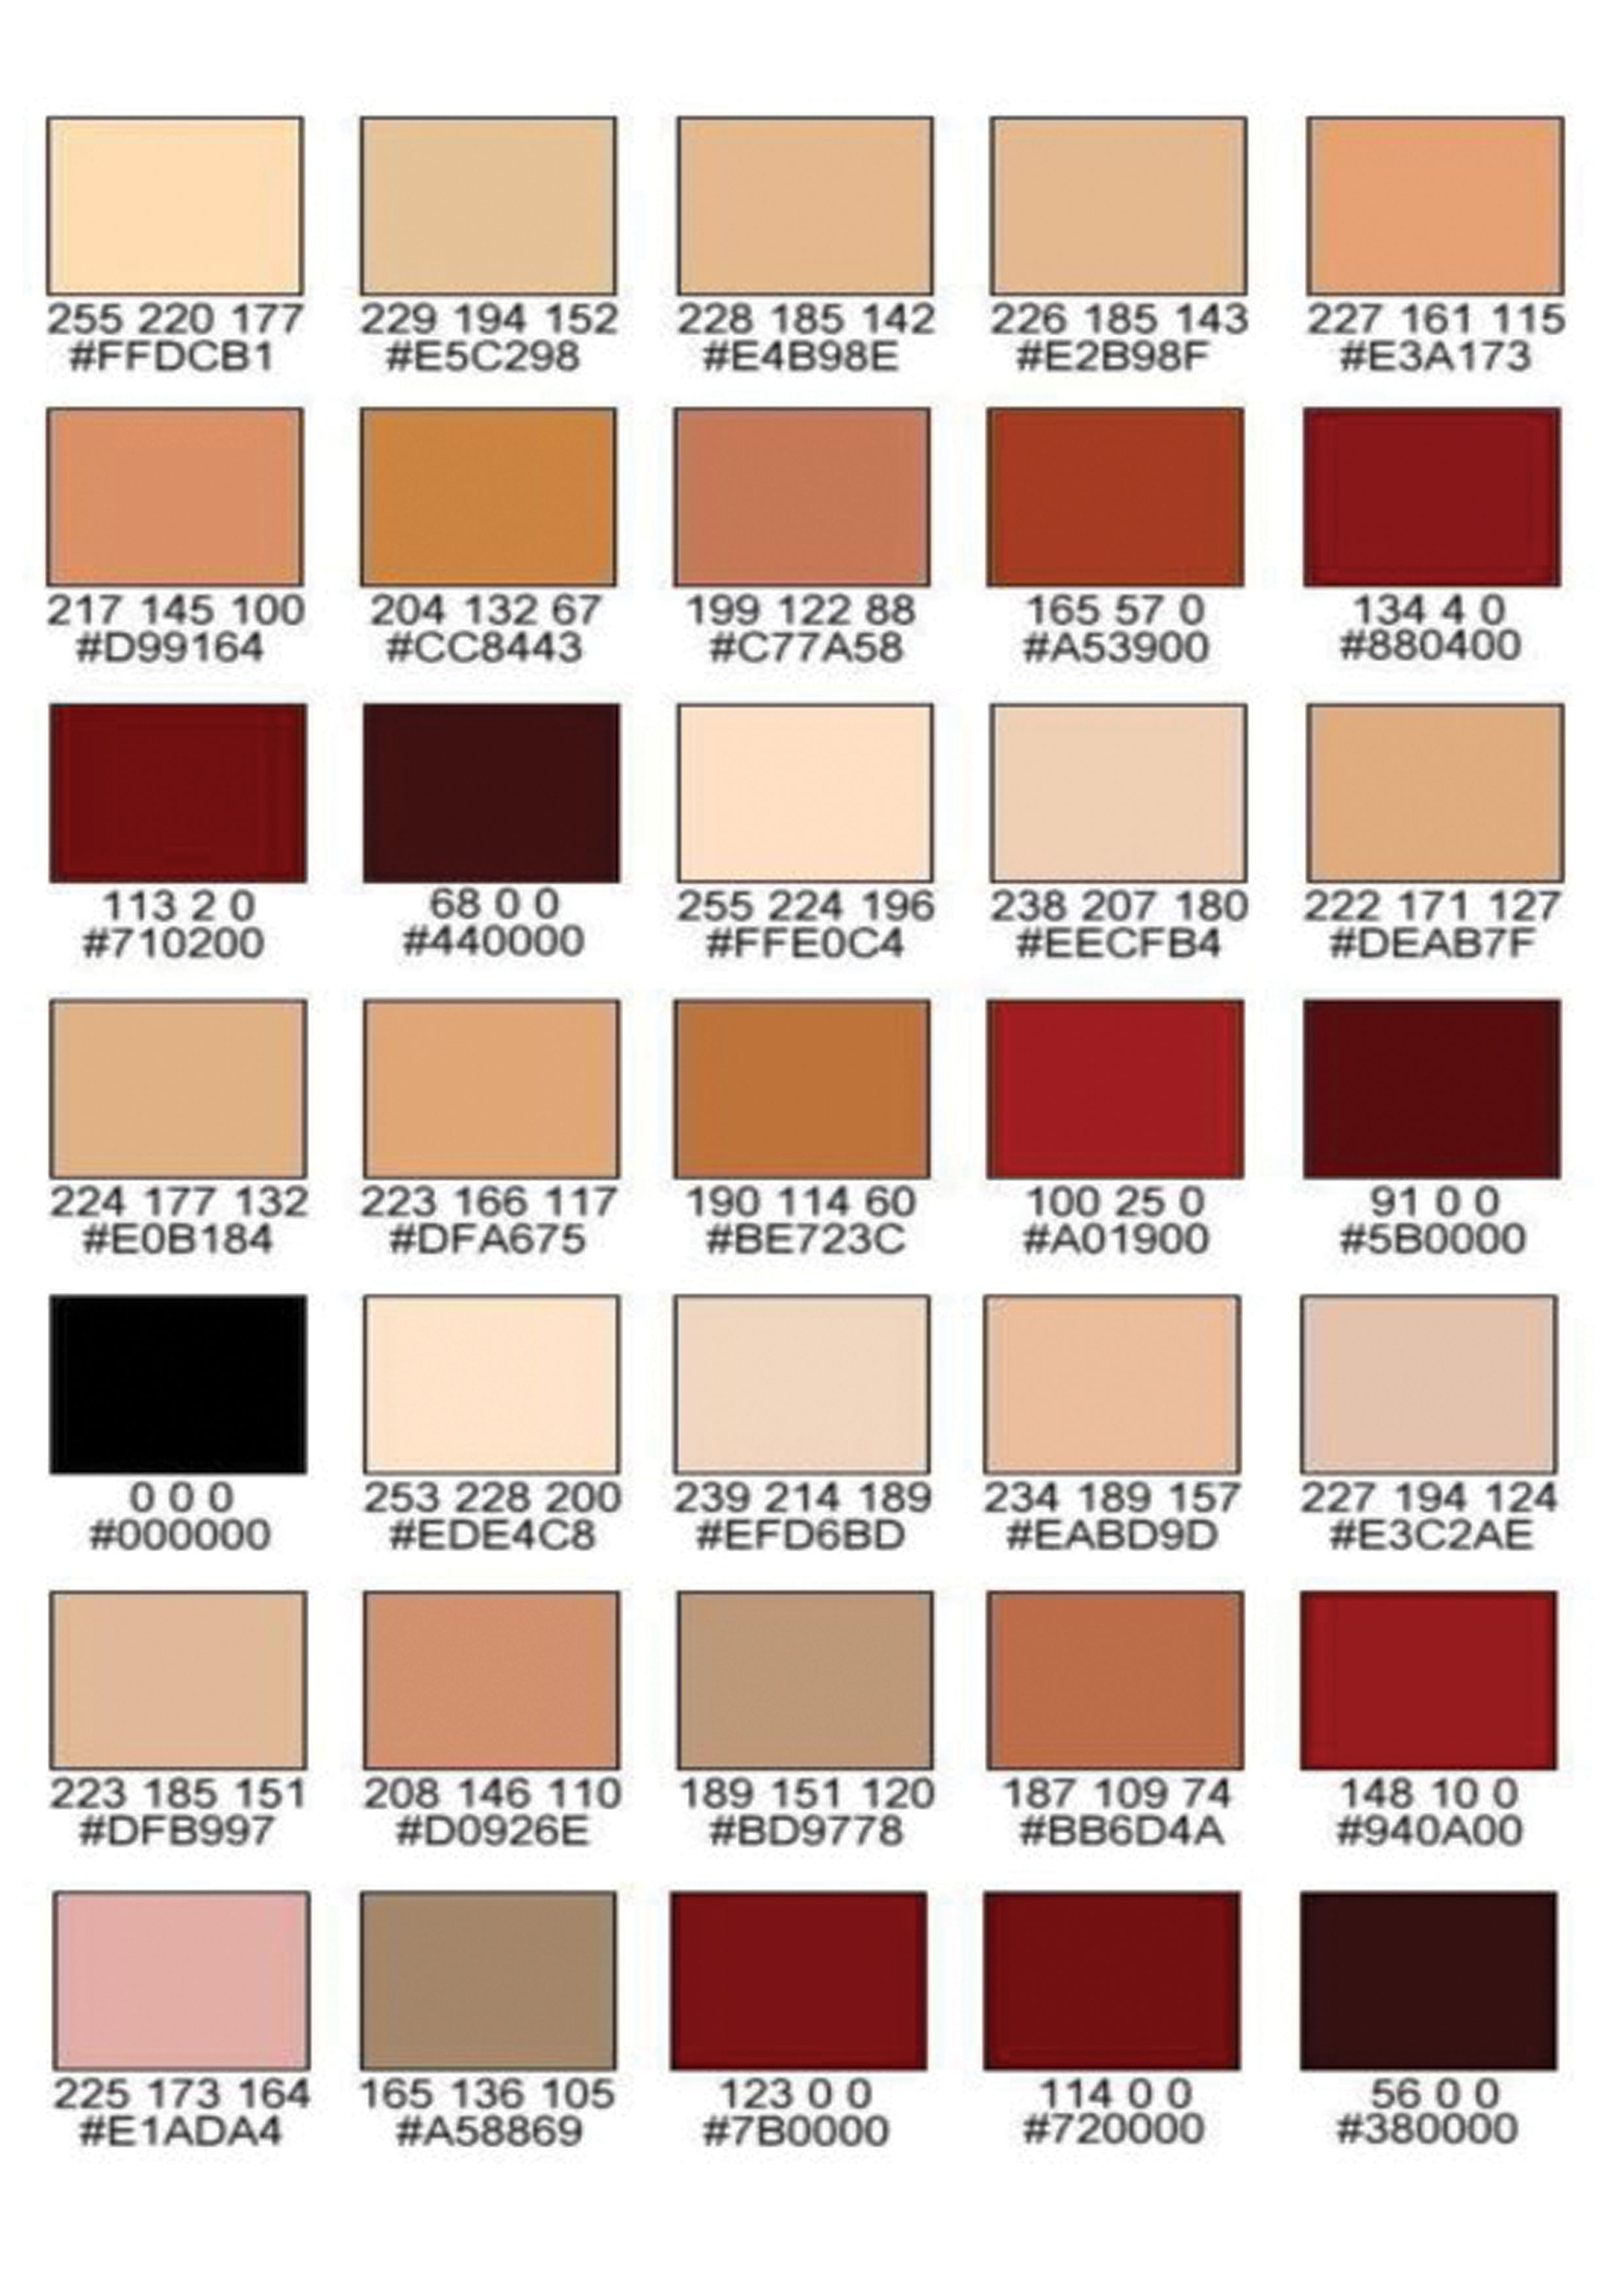 Pin By đinh Văn Nguyễn On Tutorial Study Skin Color Palette Rgb Color Codes Colors For Skin Tone